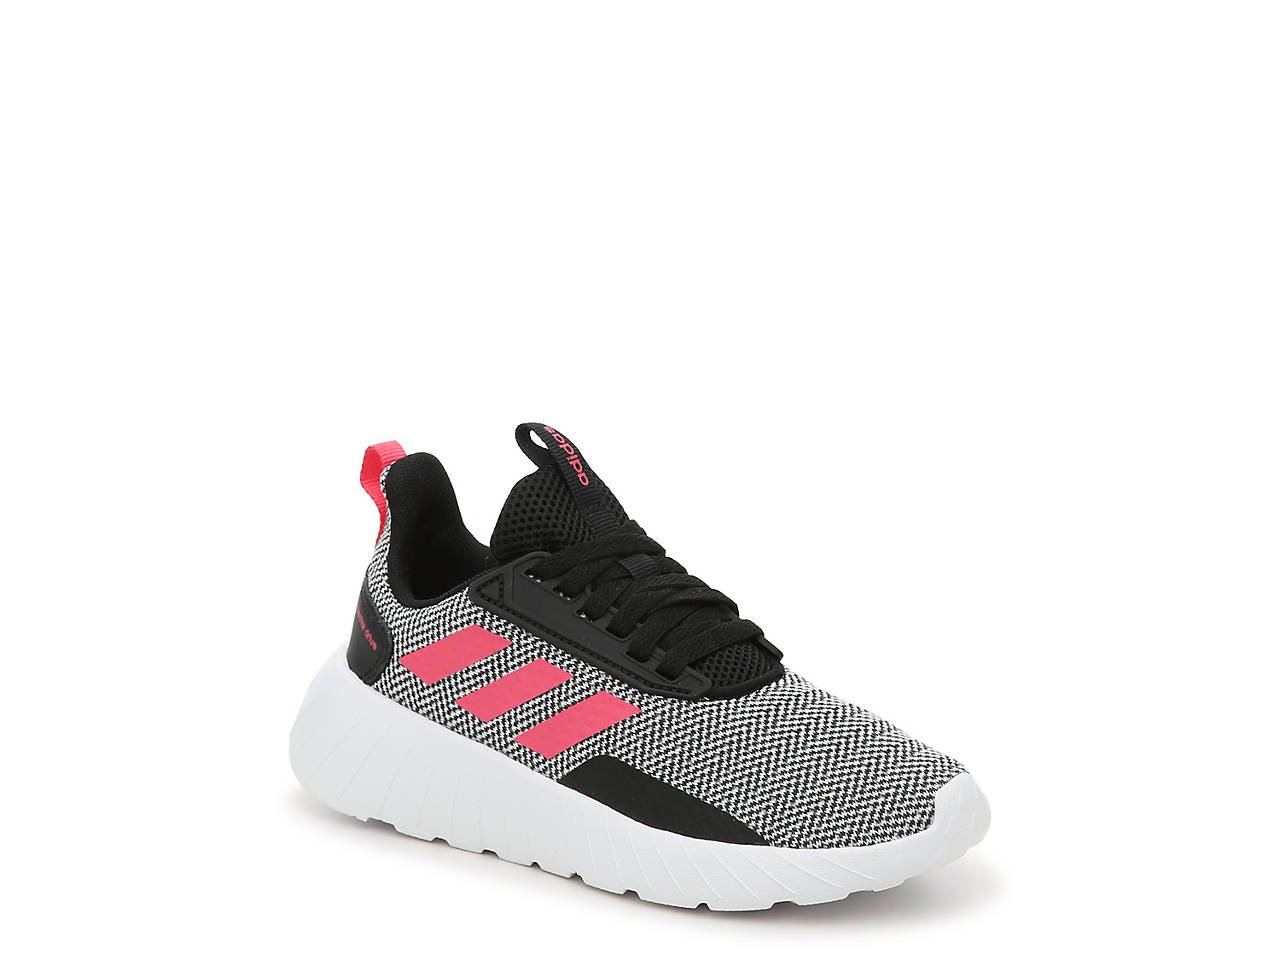 807183be200f adidas Questar Drive Toddler   Youth Sneaker Kids Shoes